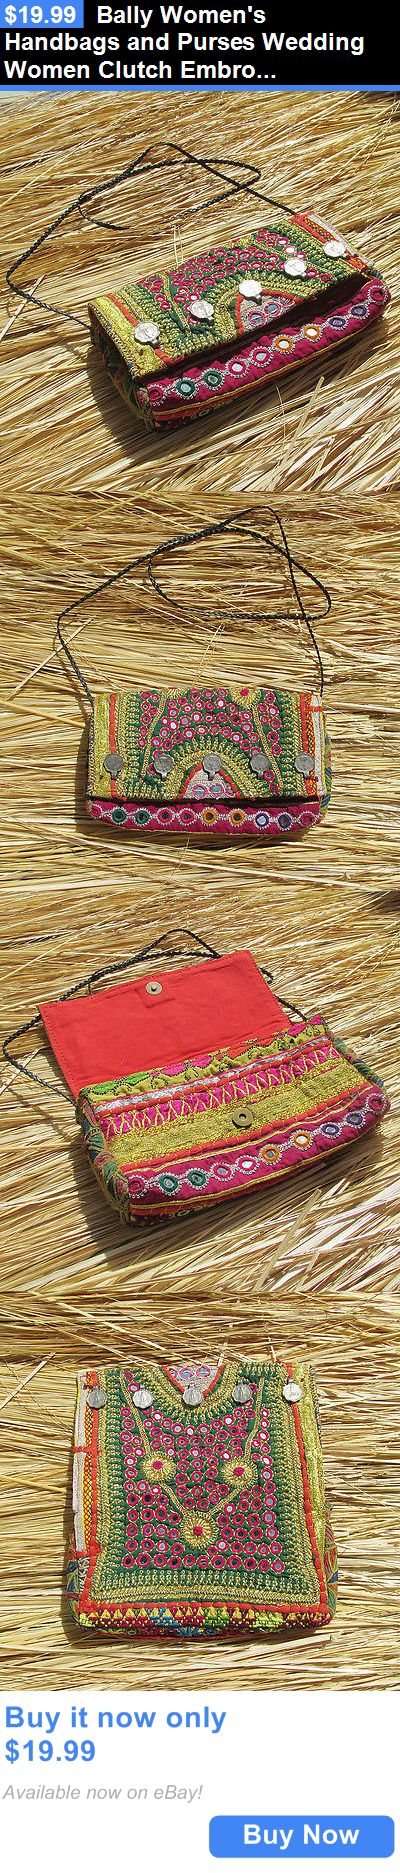 Bridal Handbags And Bags: Bally Womens Handbags And Purses Wedding Women Clutch Embroidery Ethnic Bag Art BUY IT NOW ONLY: $19.99